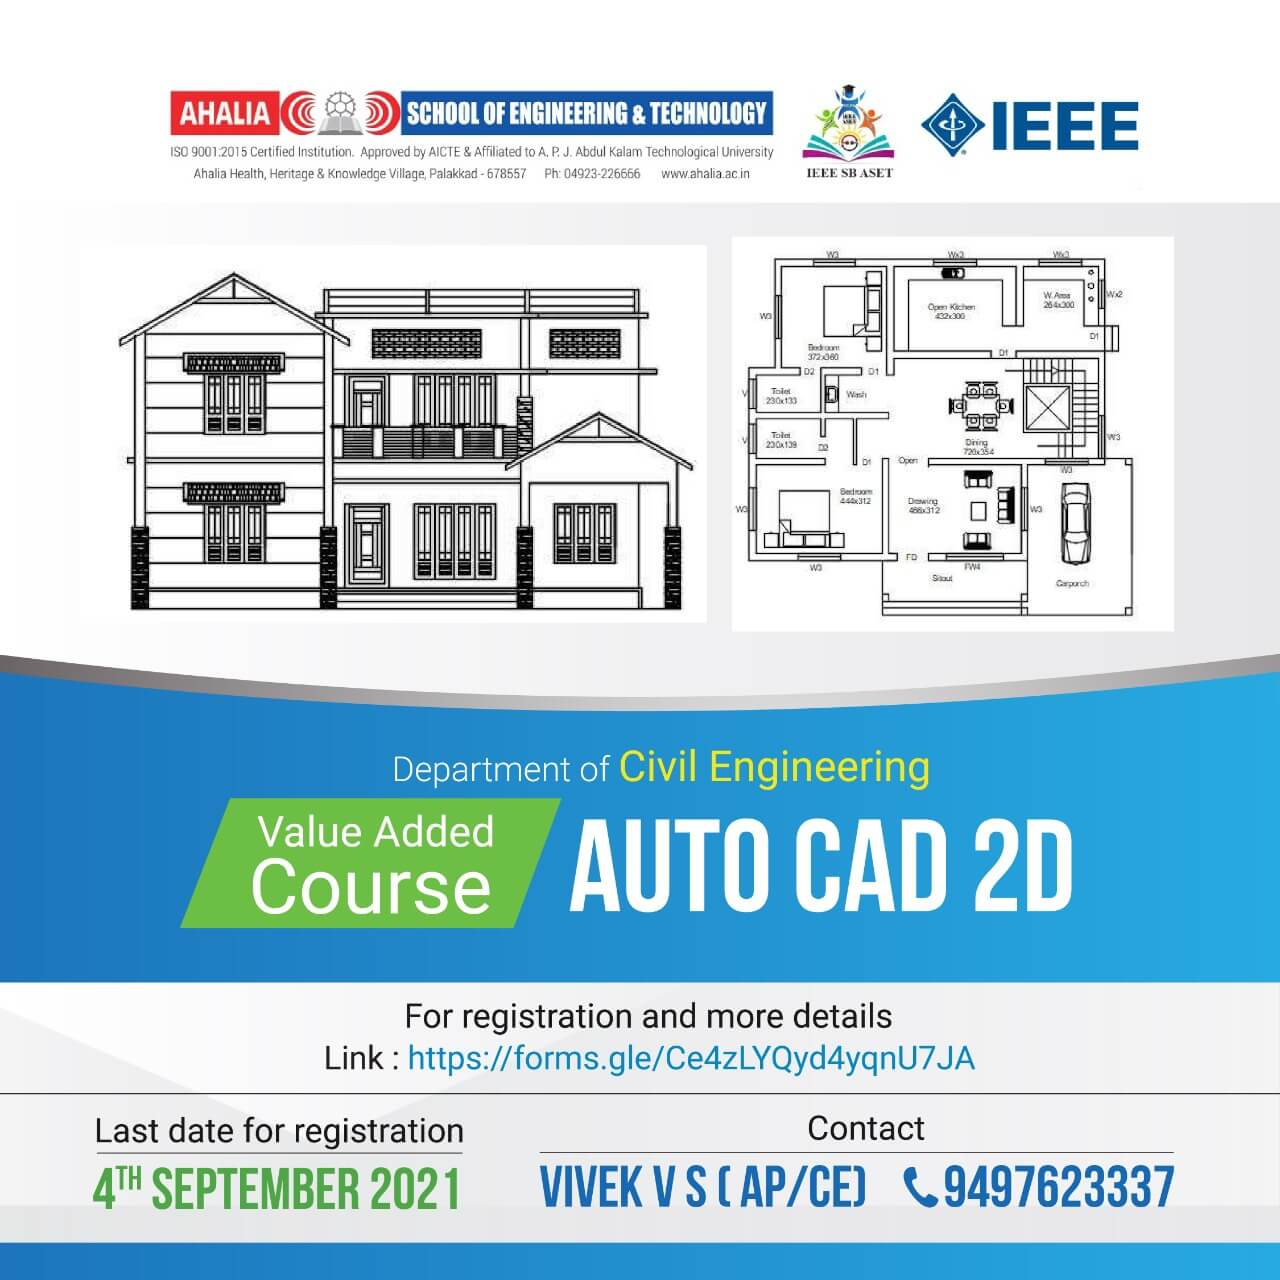 Value Added Course on AUTOCAD 2D